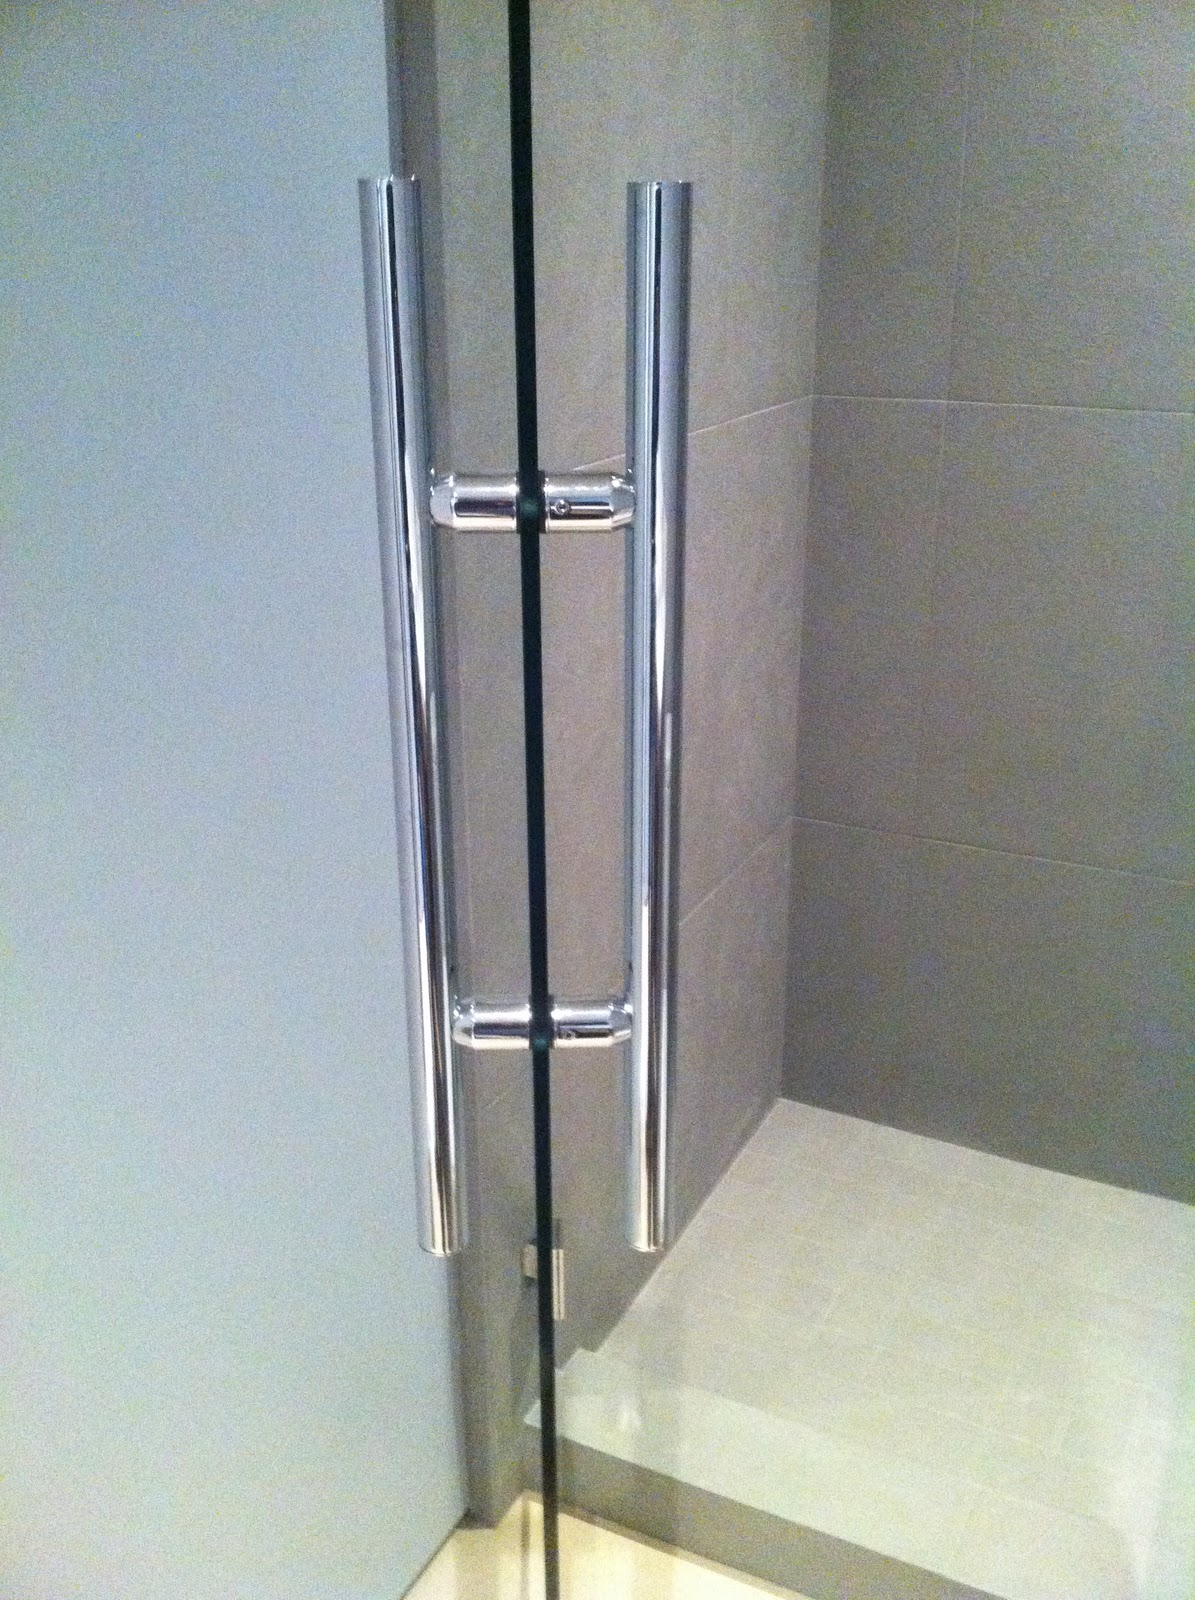 hardware laurence panels fixed designs sliding crl shower cr showerguard doors and door serenity handle guardian with